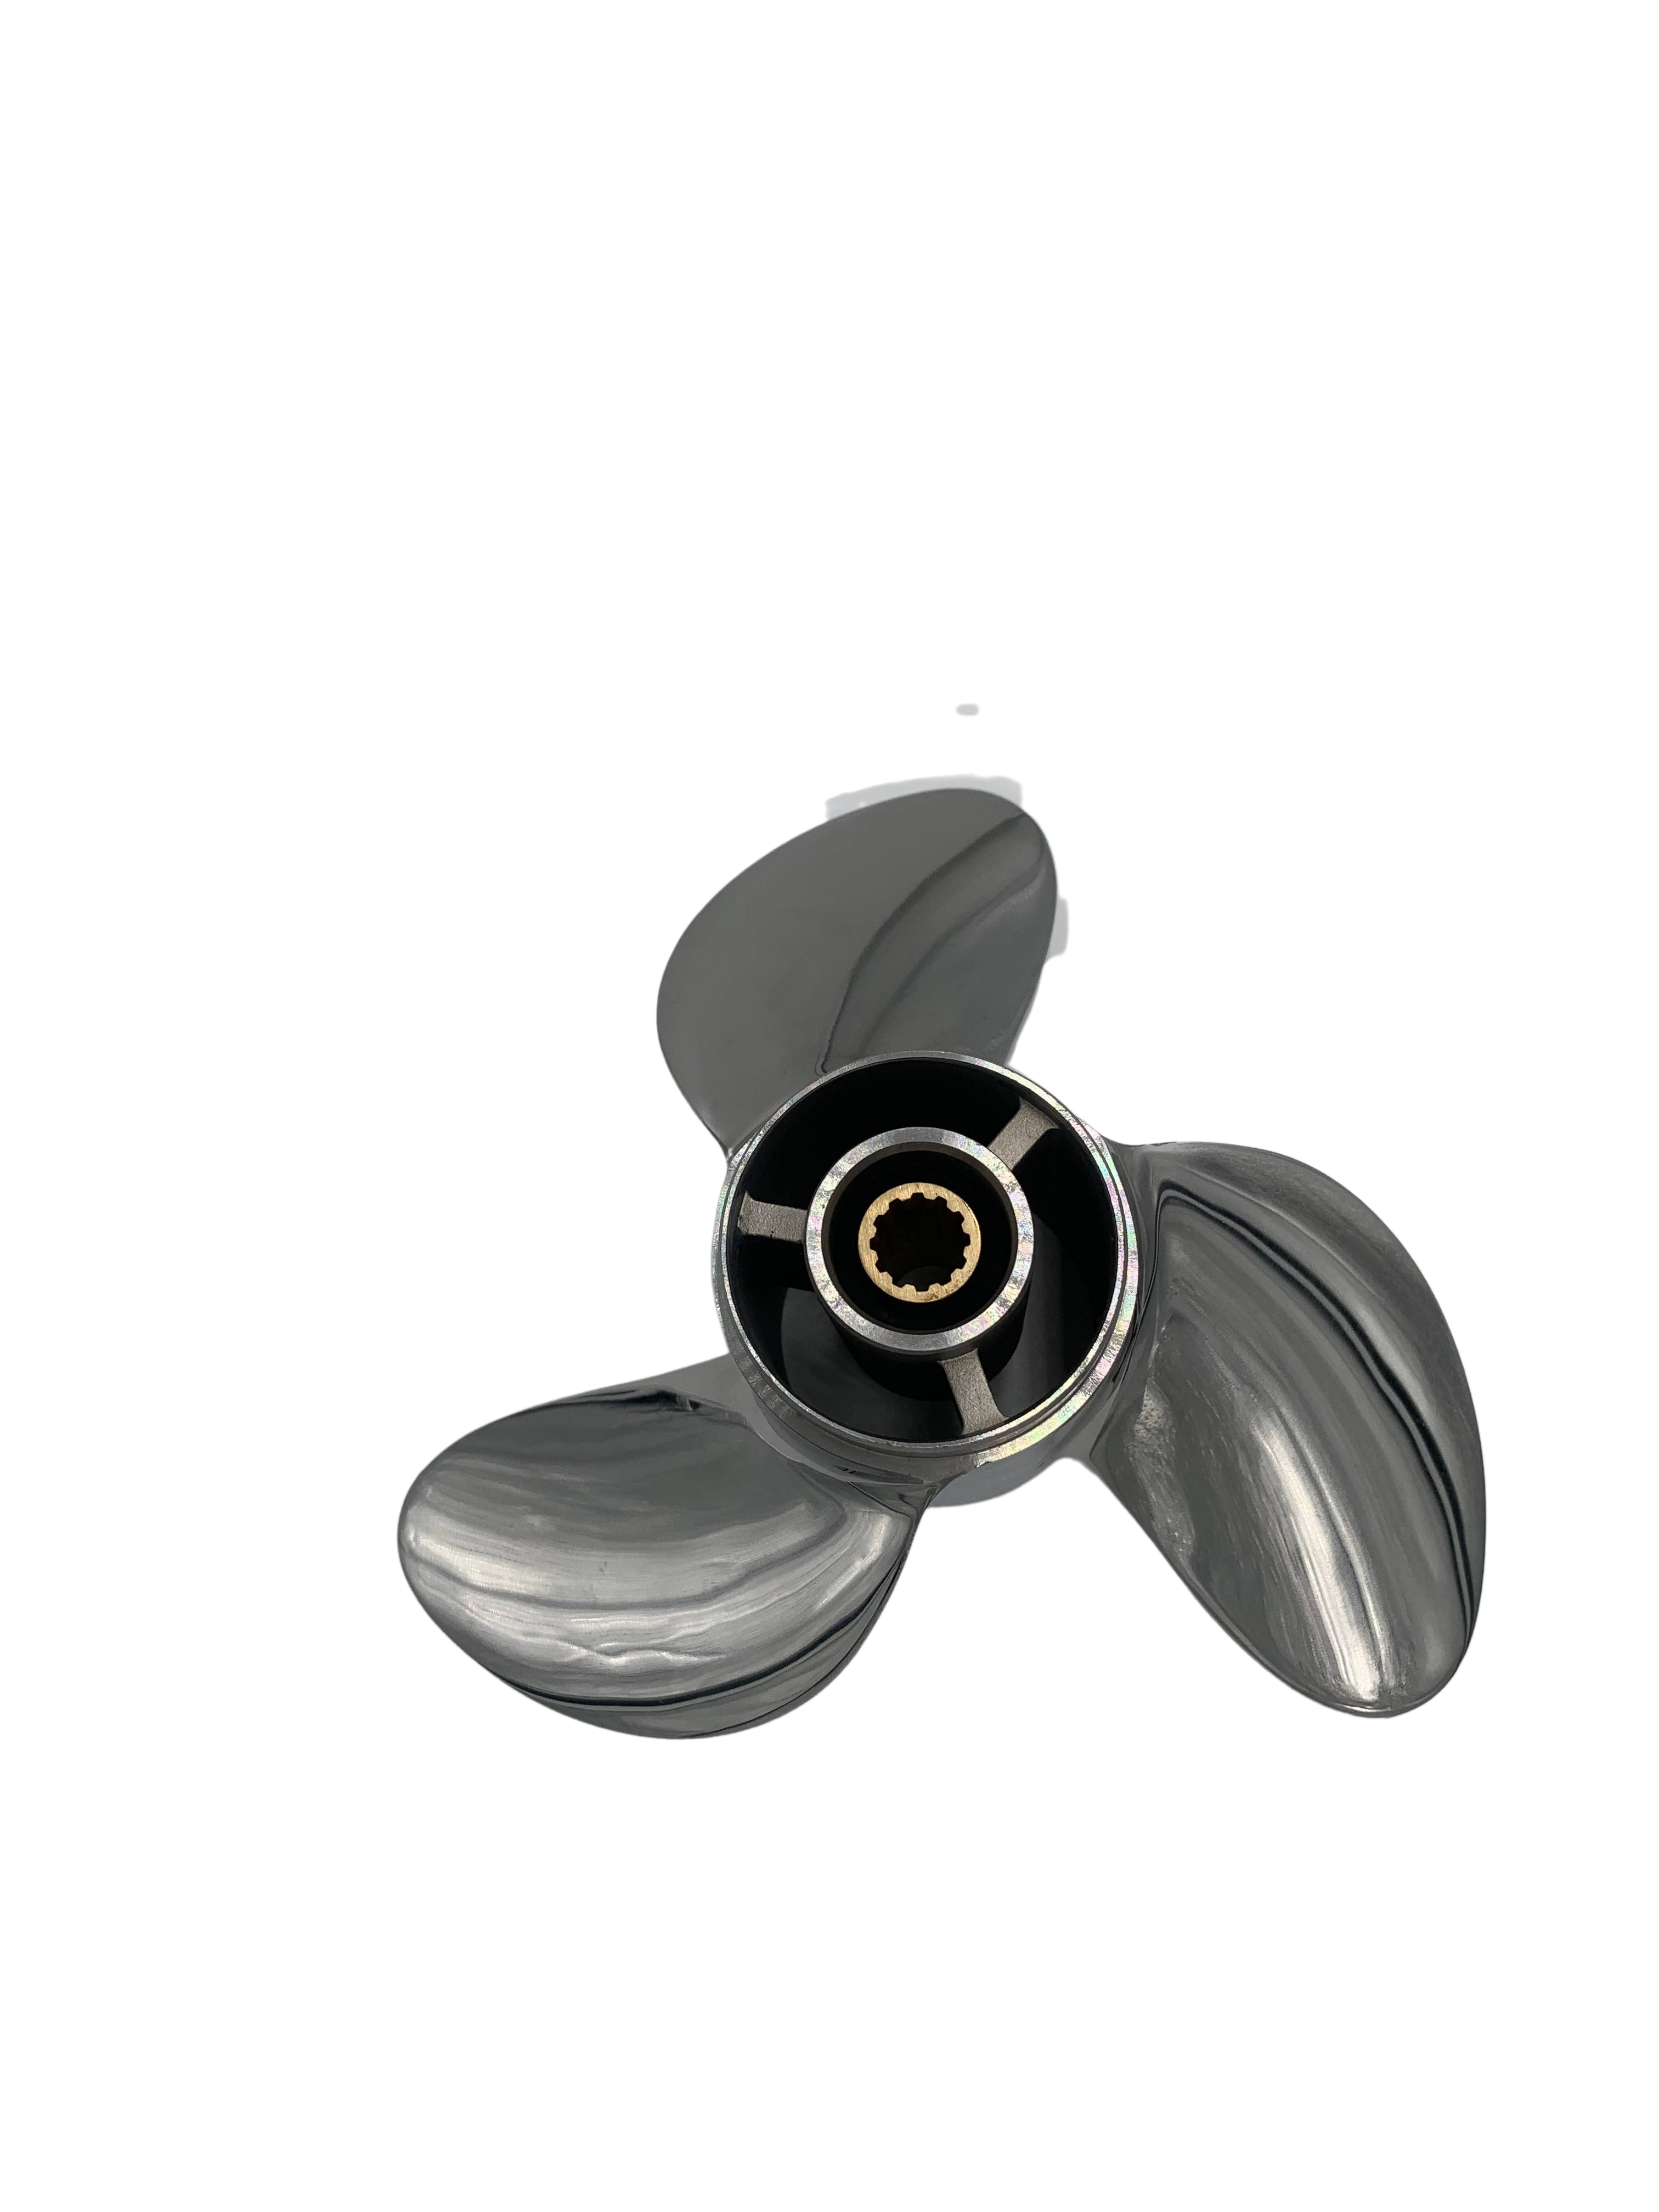 Boat Propeller 7.8x8 for Tohatsu 5HP-6HP 3 Blades Stainless Steel Prop SS 12 Tooth RH OEM NO: 3R1B64514-2 7.8x8 enlarge